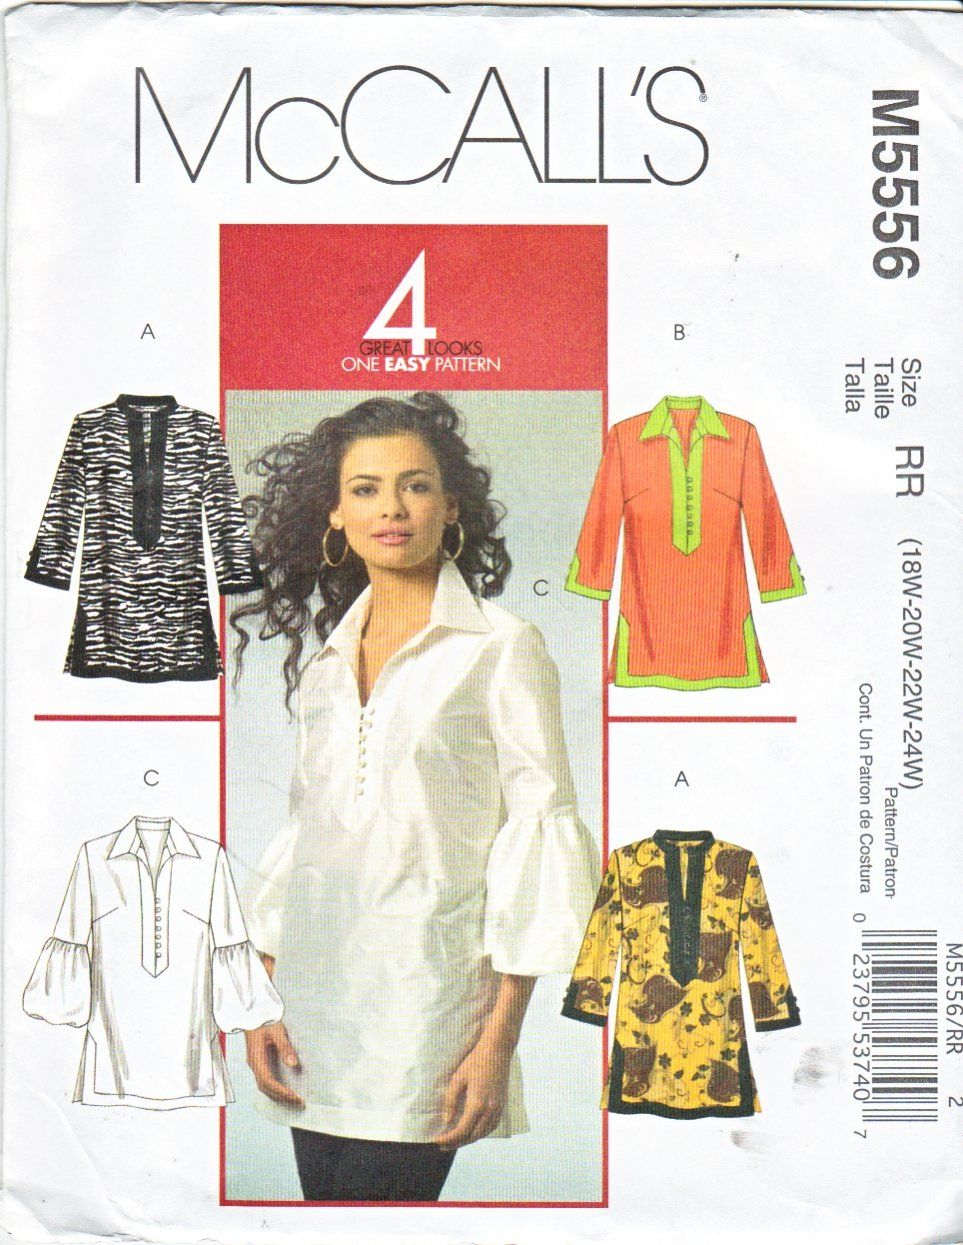 McCall's Sewing Pattern 5556 Womans Plus Size 18W-24W Pullover Tunic Top Sleeve Collar Variations  --  Currently Available for sale from www.MoonwishesSewingandCrafts.com